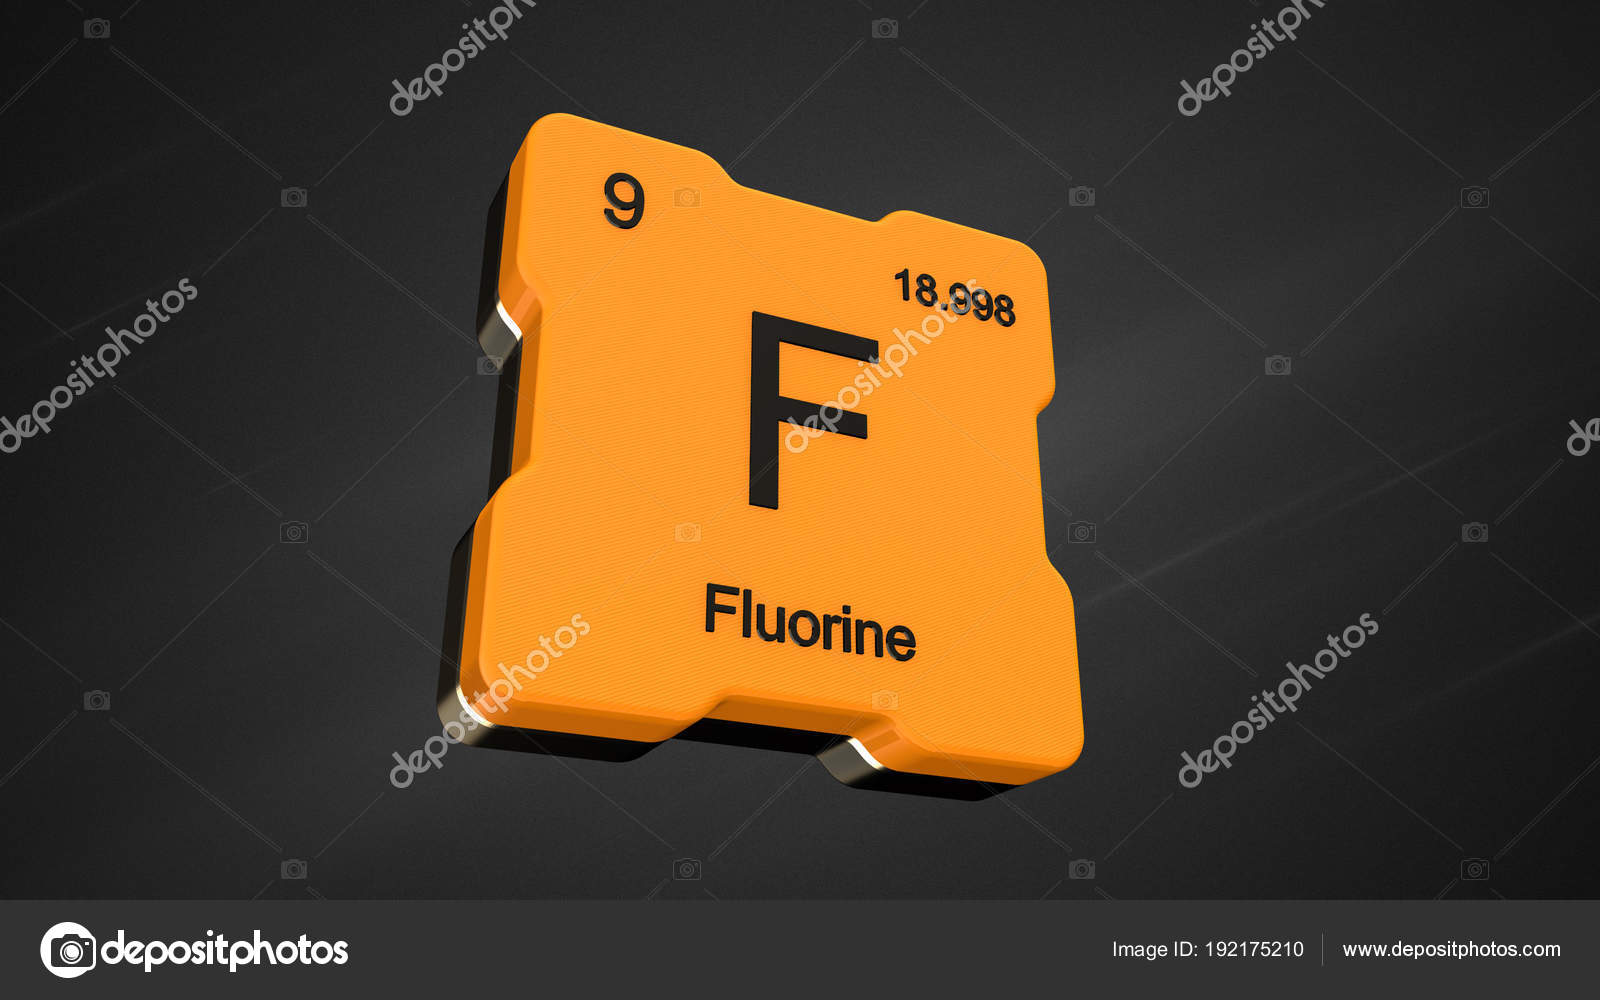 Fluorine element number periodic table futuristic yellow icon nice fluorine element number 9 from the periodic table on futuristic yellow icon and nice lens flare on noisy dark background 3d render photo by conceptw urtaz Choice Image